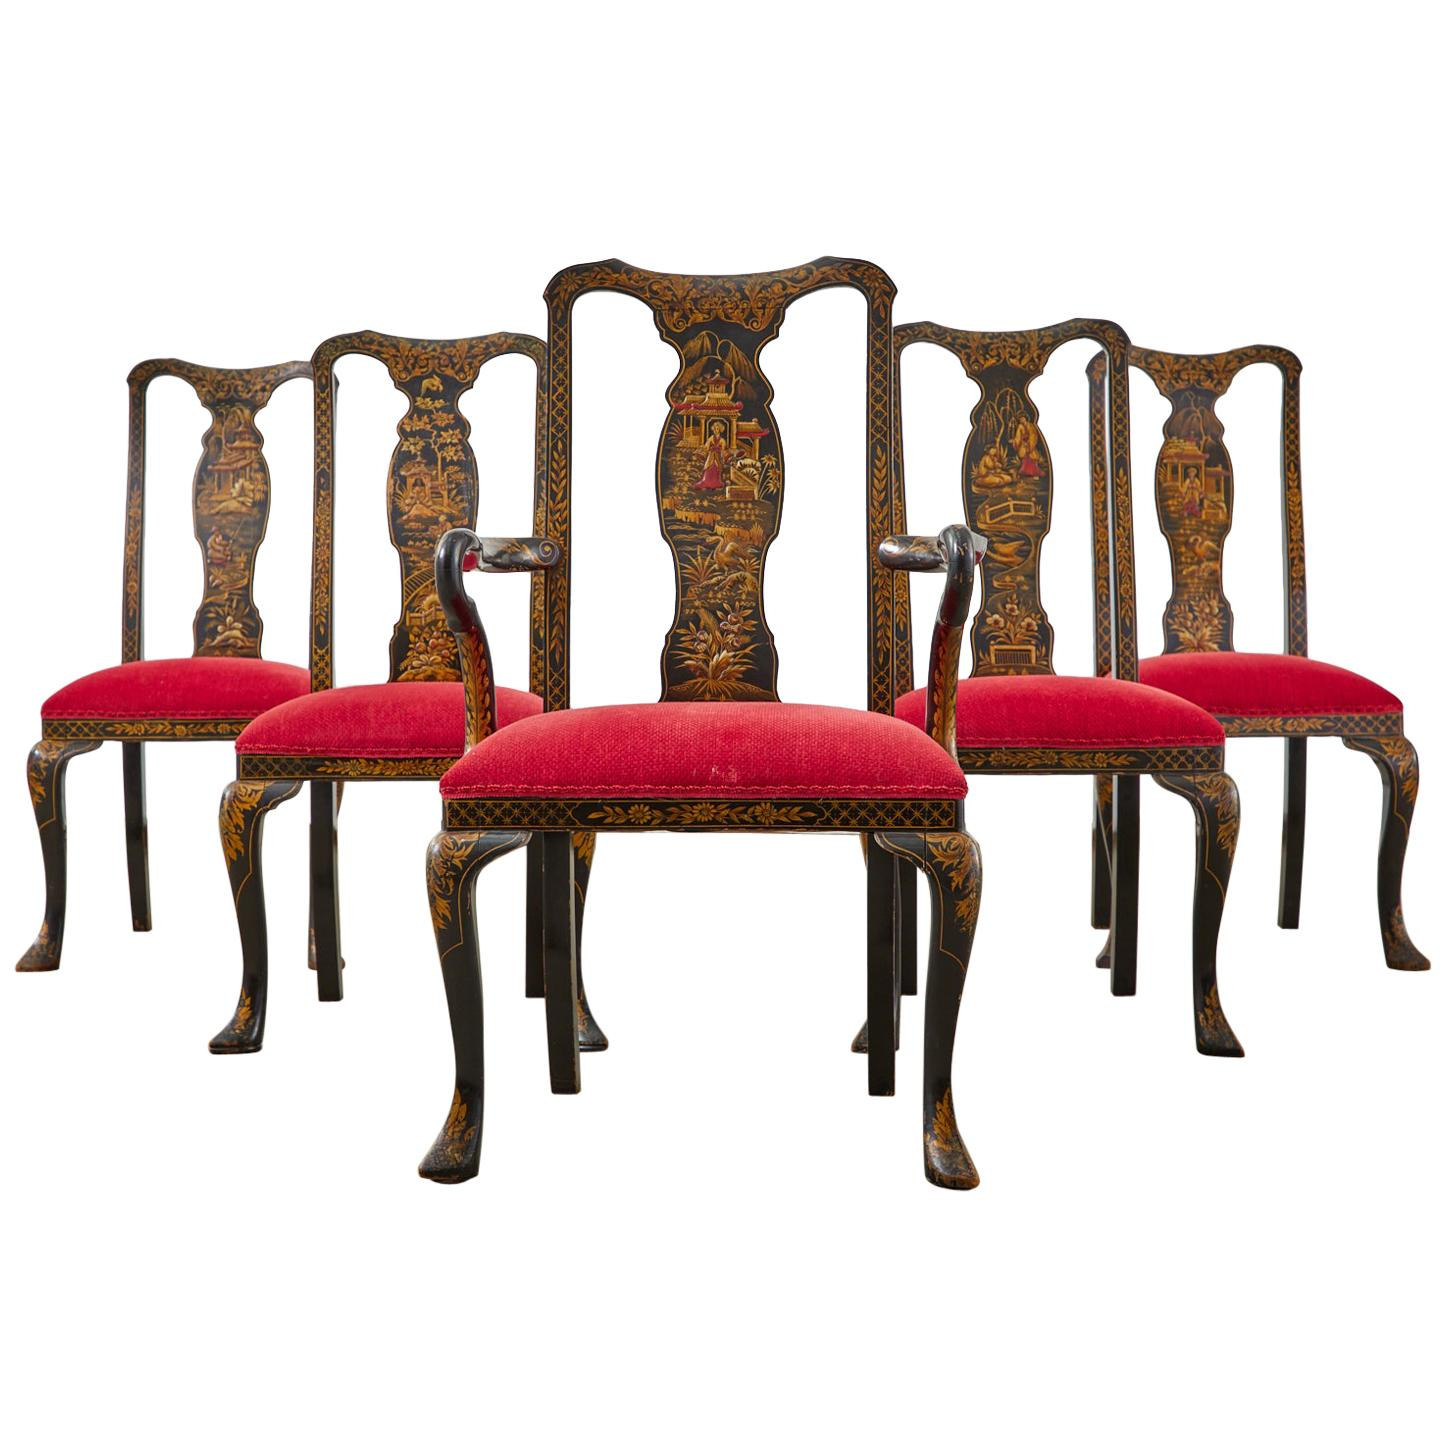 Set of Five Queen Anne Style Chinoiserie Lacquered Dining Chairs